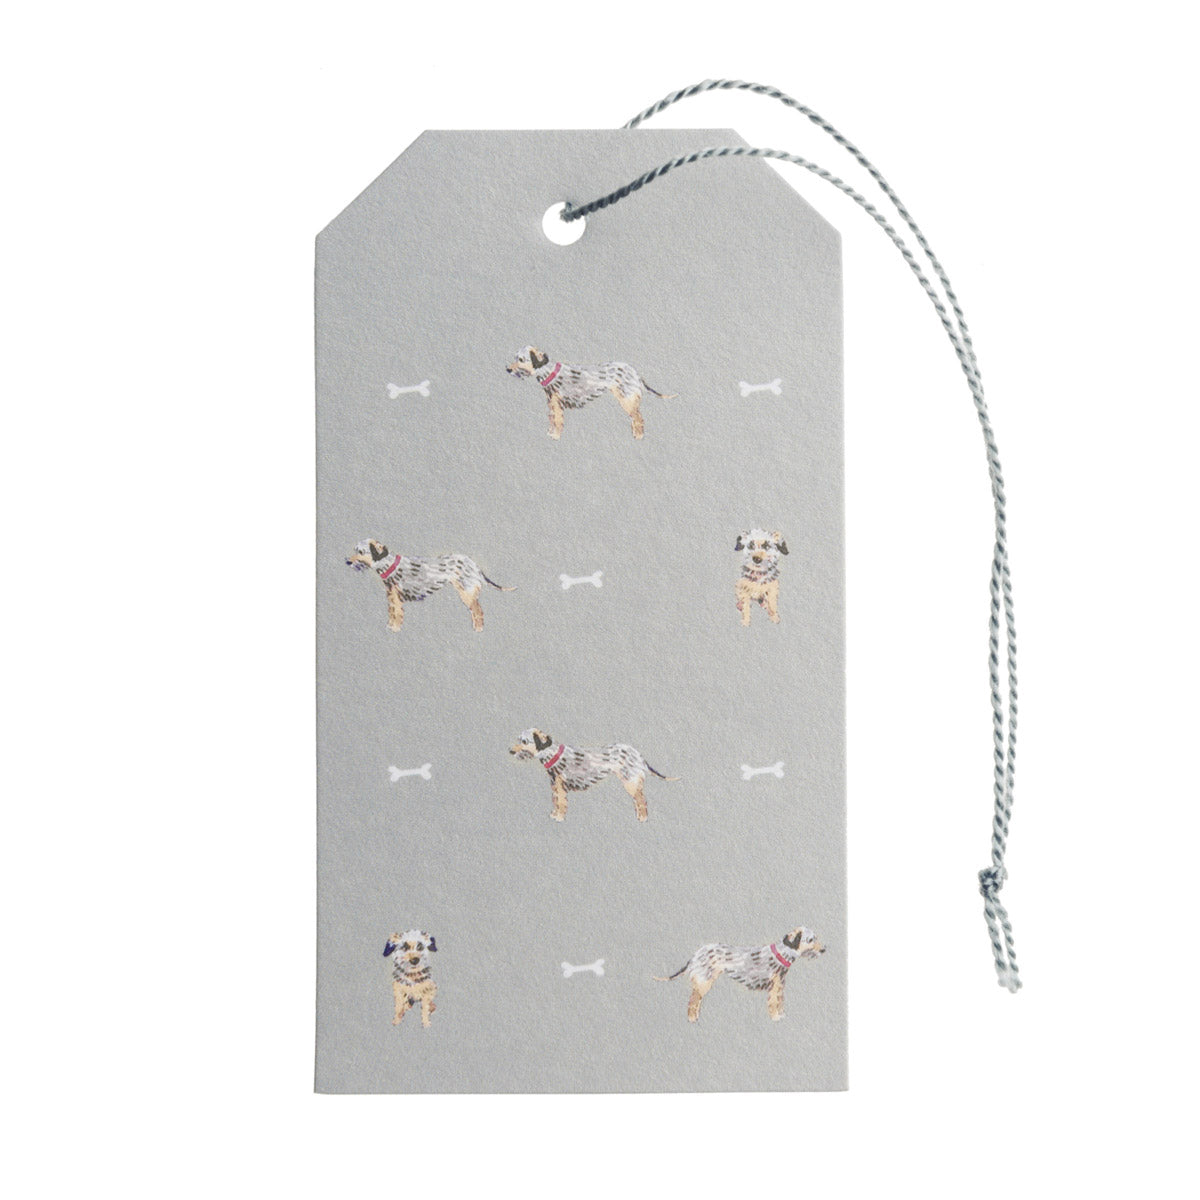 Terrier Gift Tags - Set of 10